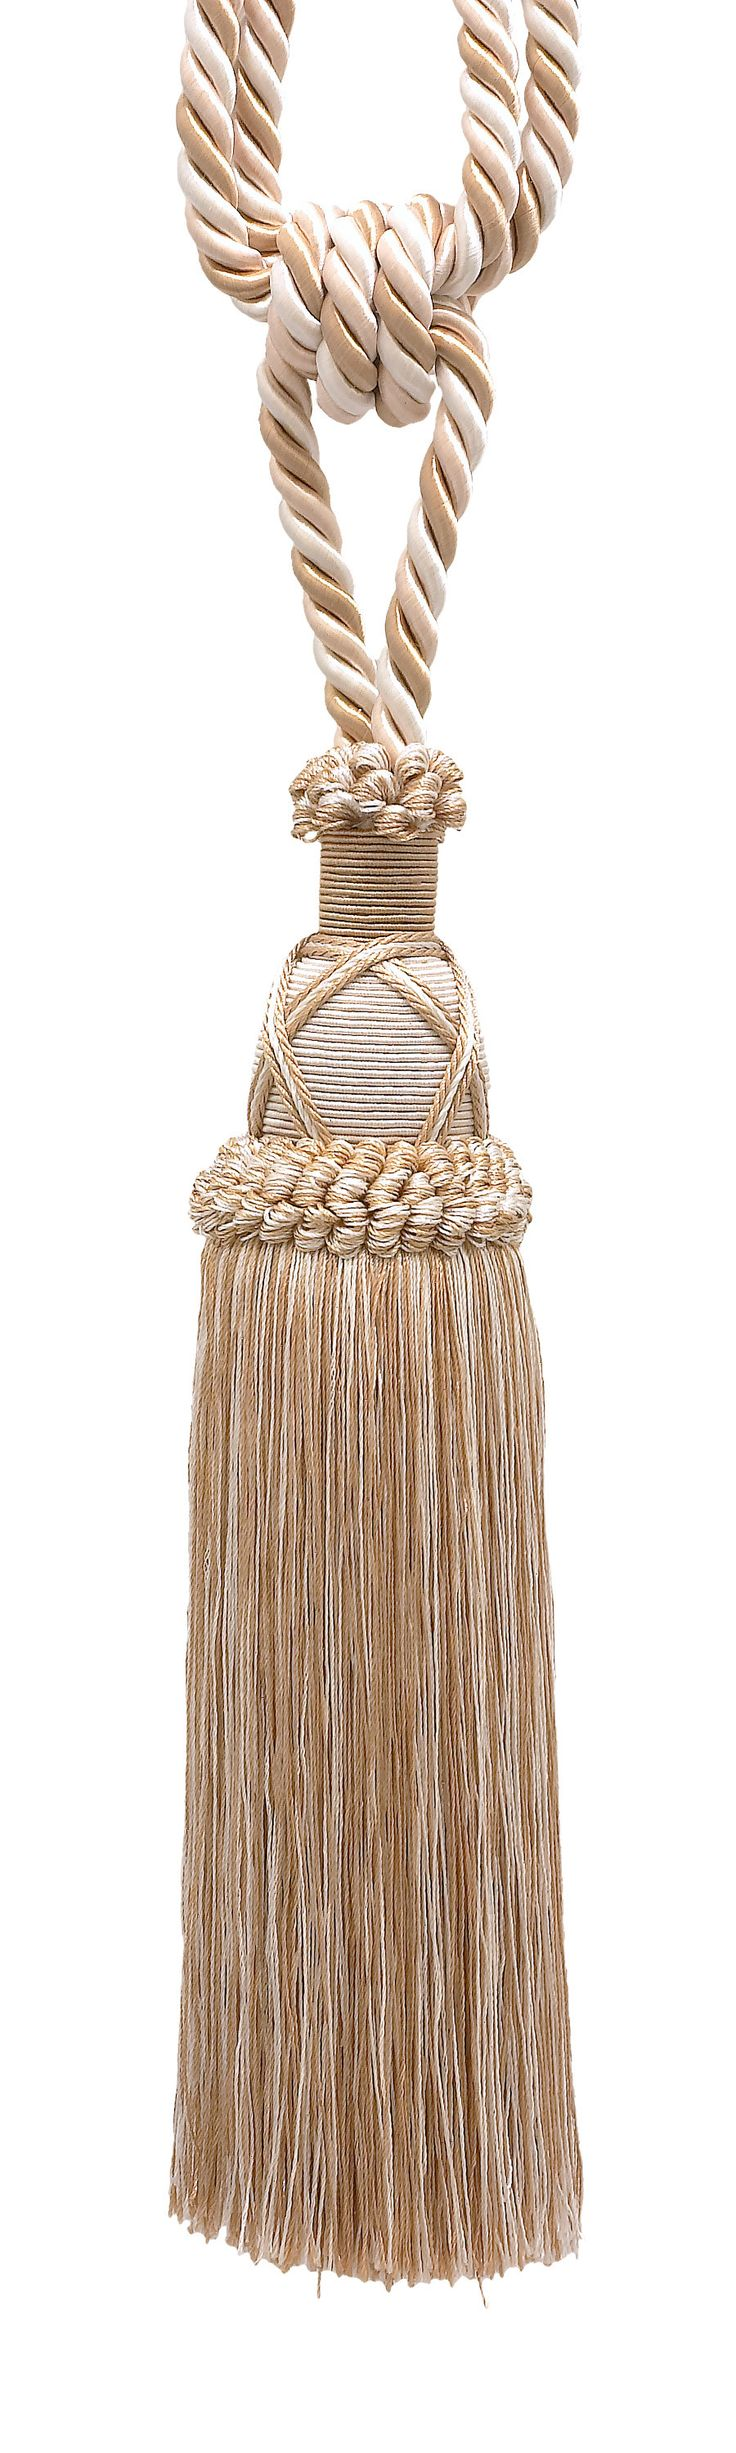 """Beautiful Ivory, Light Beige Curtain & Drapery Tassel Tieback / 10"""" tassel, 30 1/2"""" Spread (embrace), 3/8"""" Cord, Imperial II Collection Style# TBIC-1 Color: WHITE SANDS - 4001"""